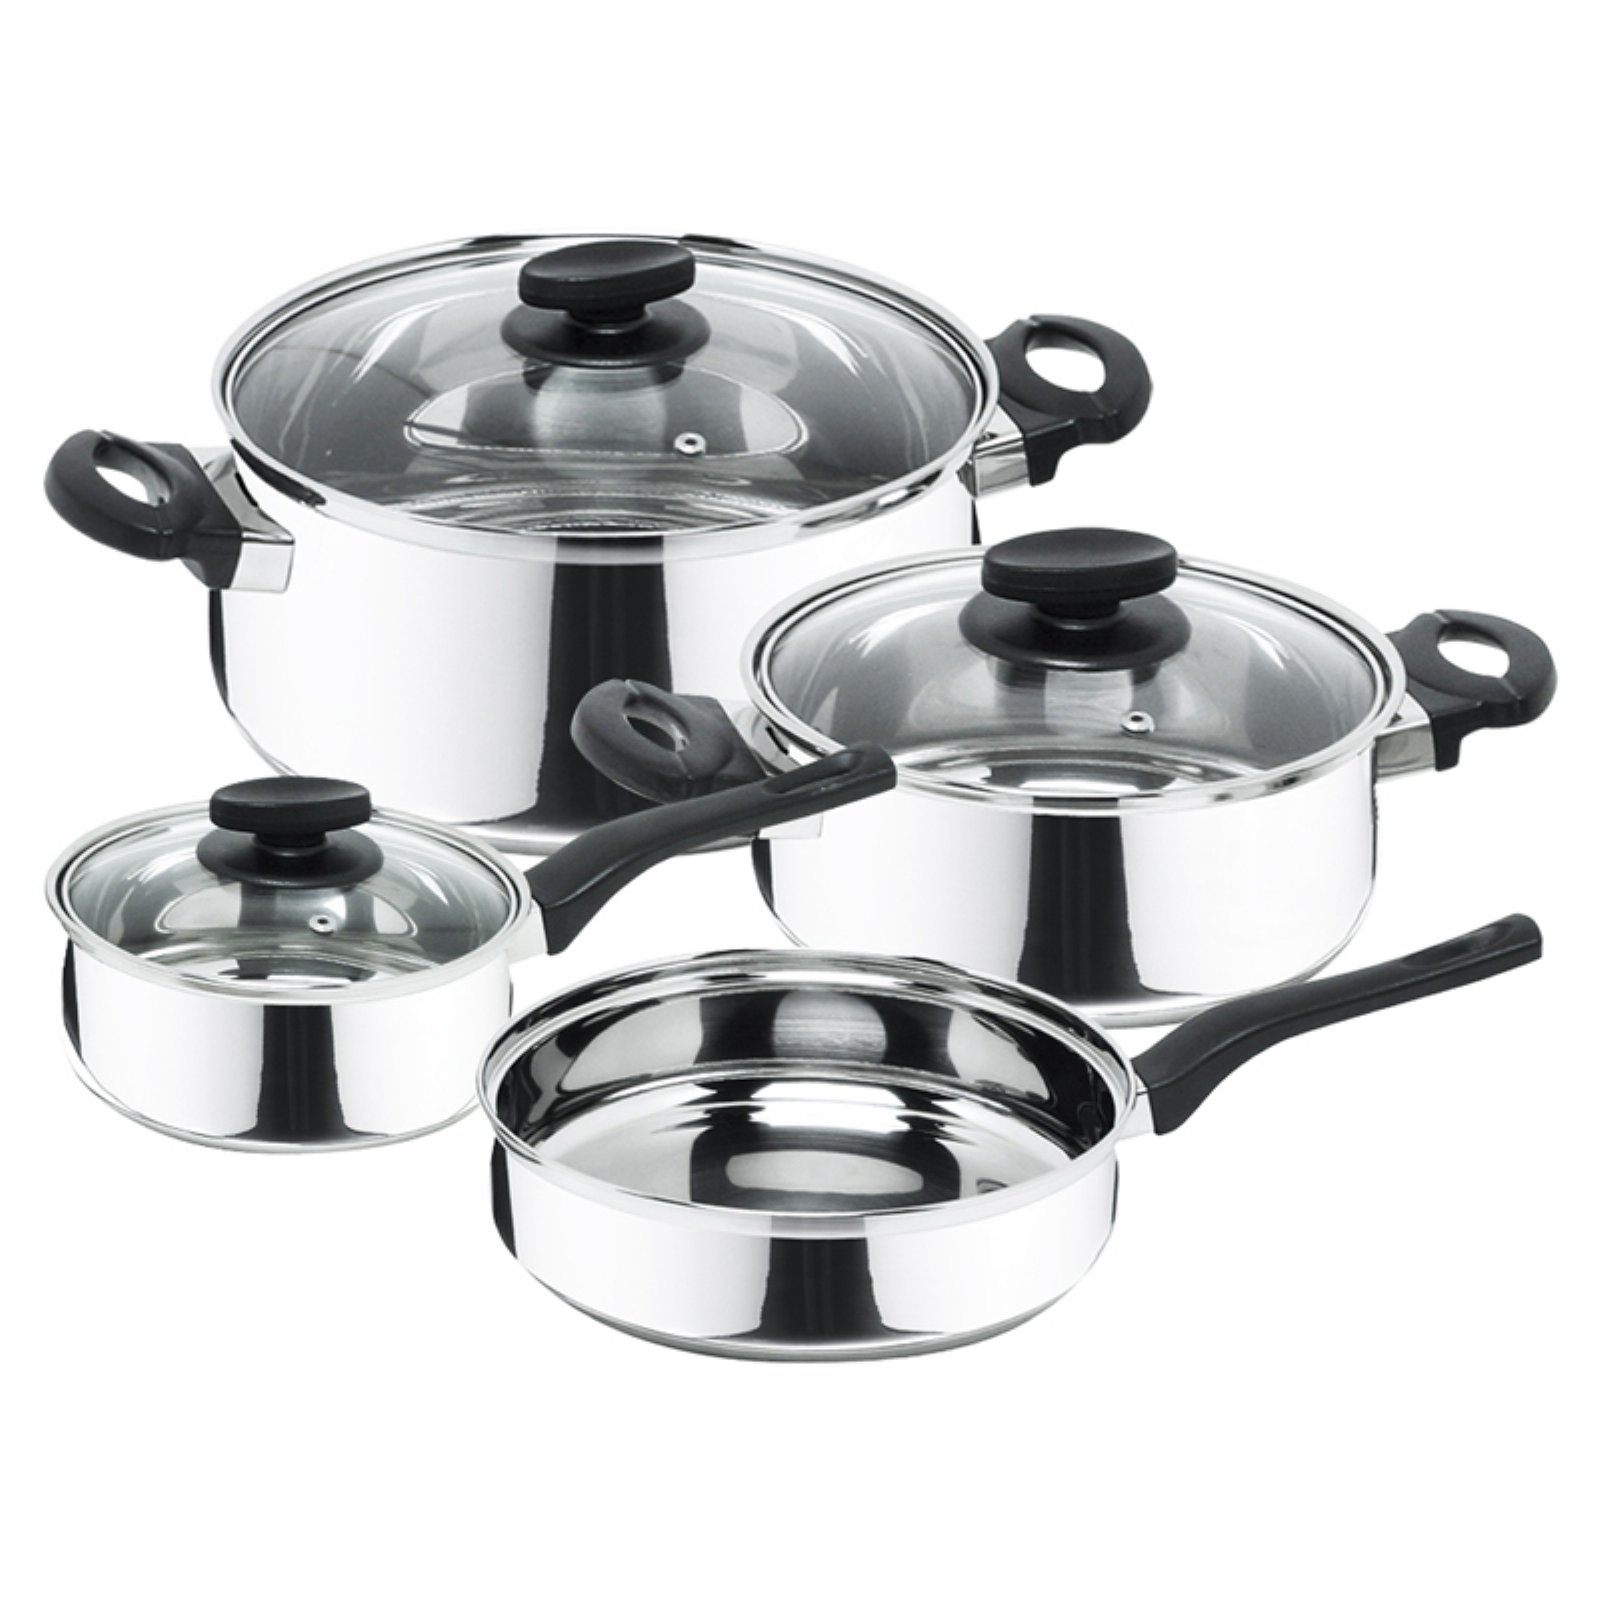 Magefesa Bohemia-Priminute 7 Piece Stainless Steel Cookware Set